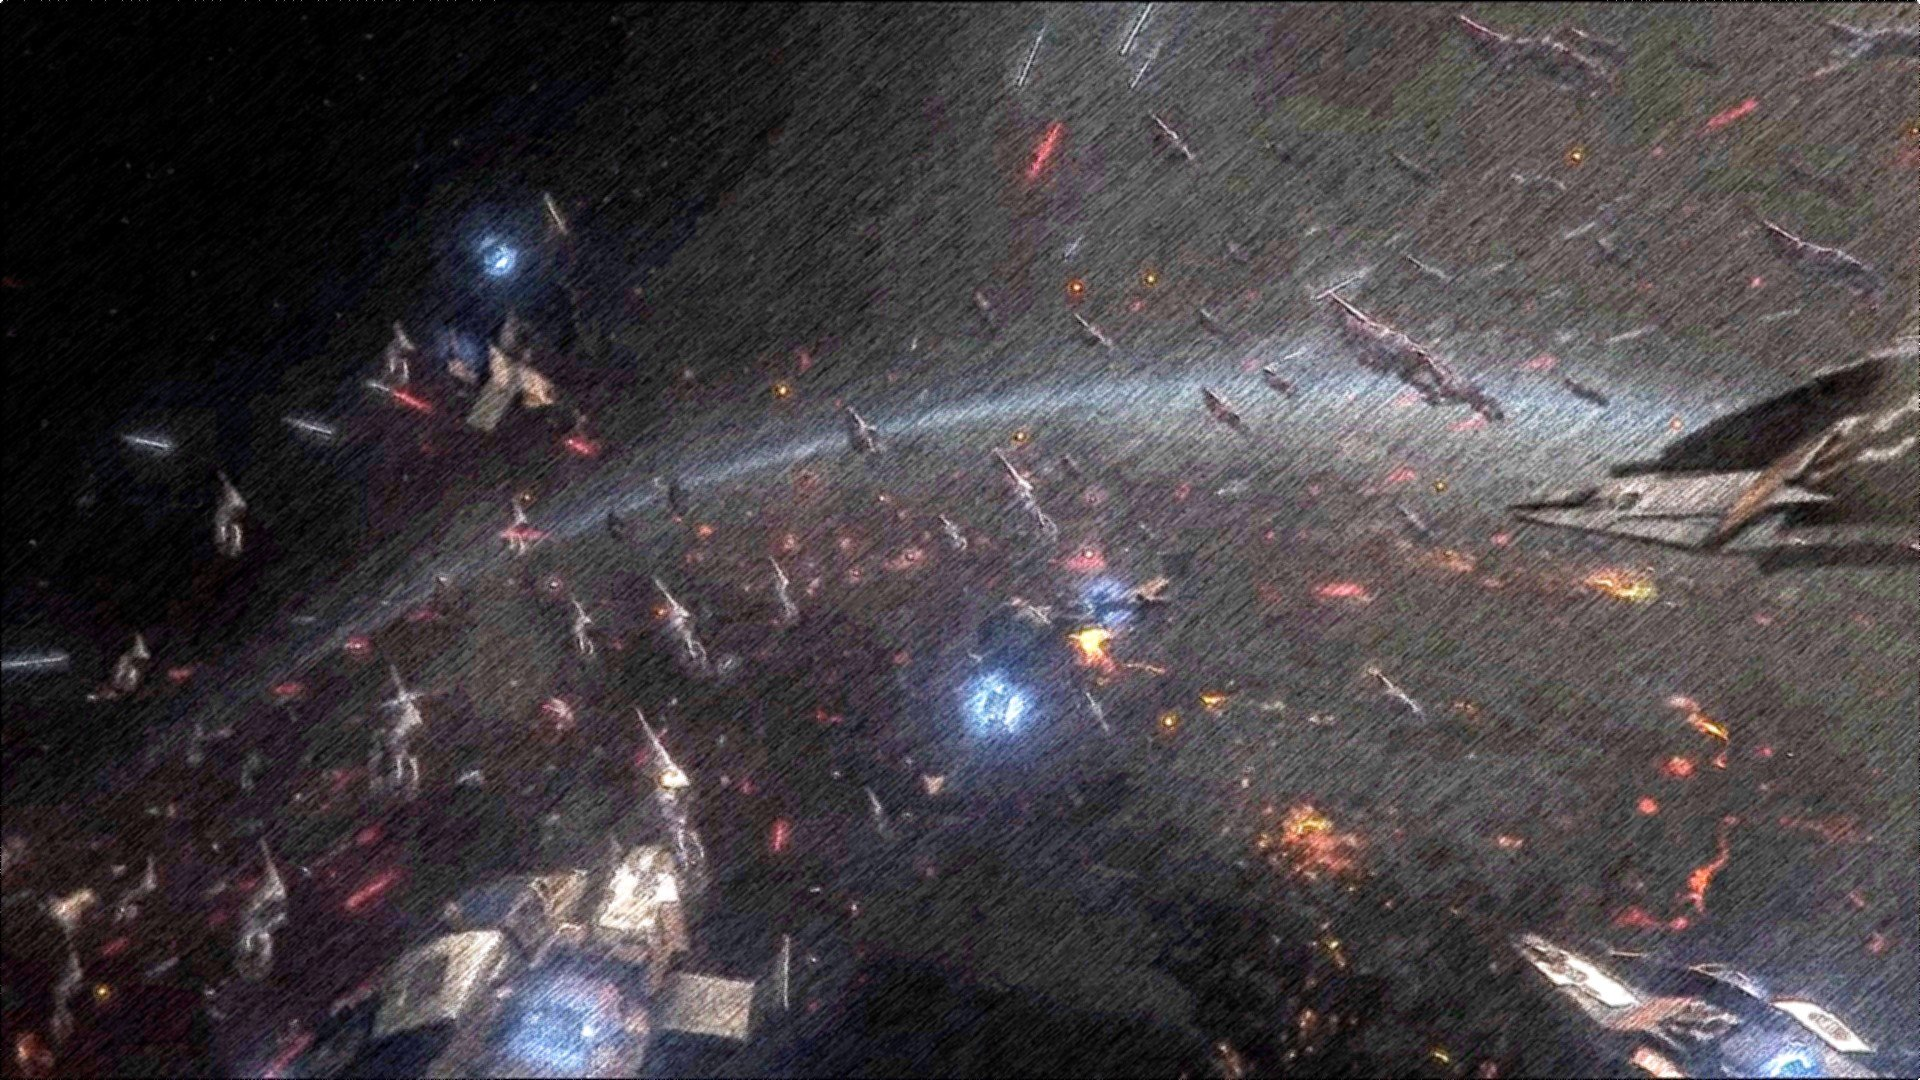 Free Download Star Wars Space Battle Wallpaper 1920x1080 For